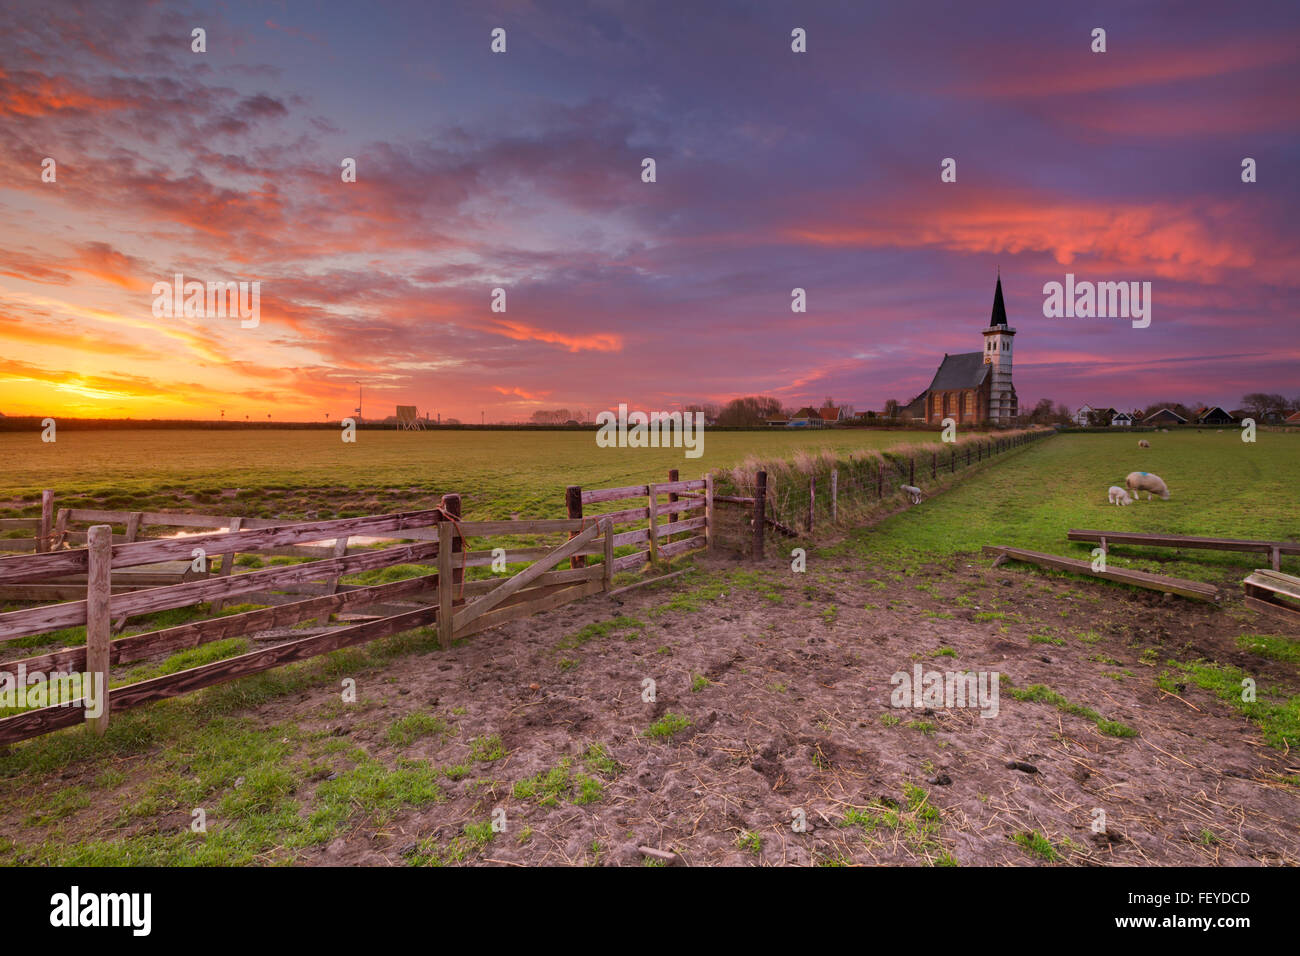 The church of Den Hoorn on the island of Texel in The Netherlands at sunrise. A field with sheep and little lambs - Stock Image